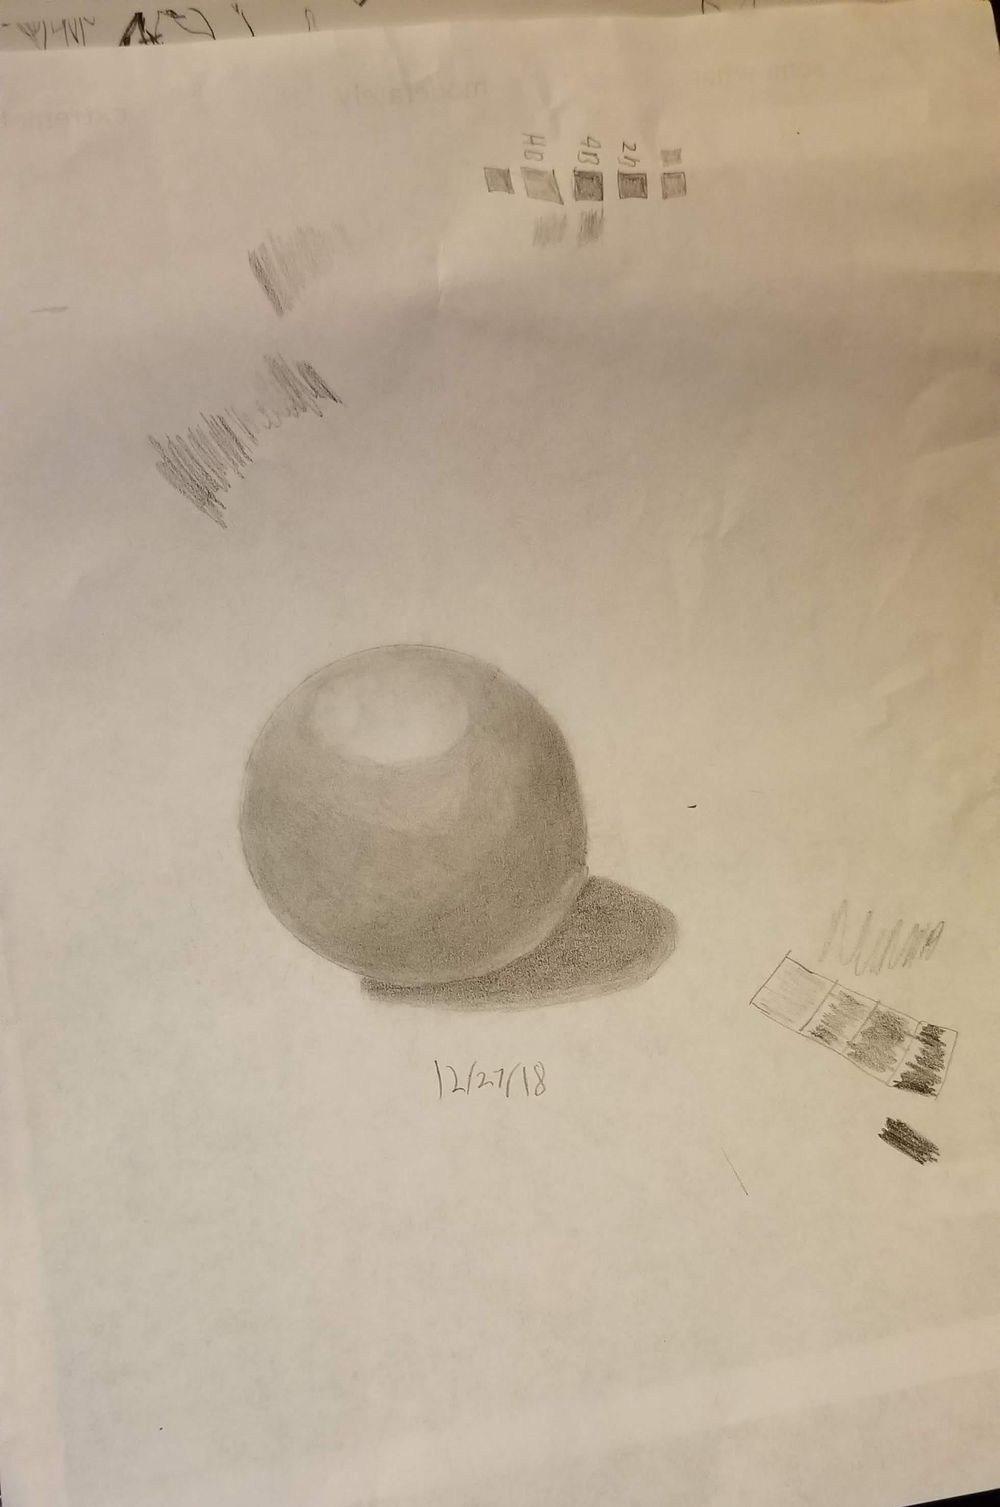 Sphere with shading - image 1 - student project